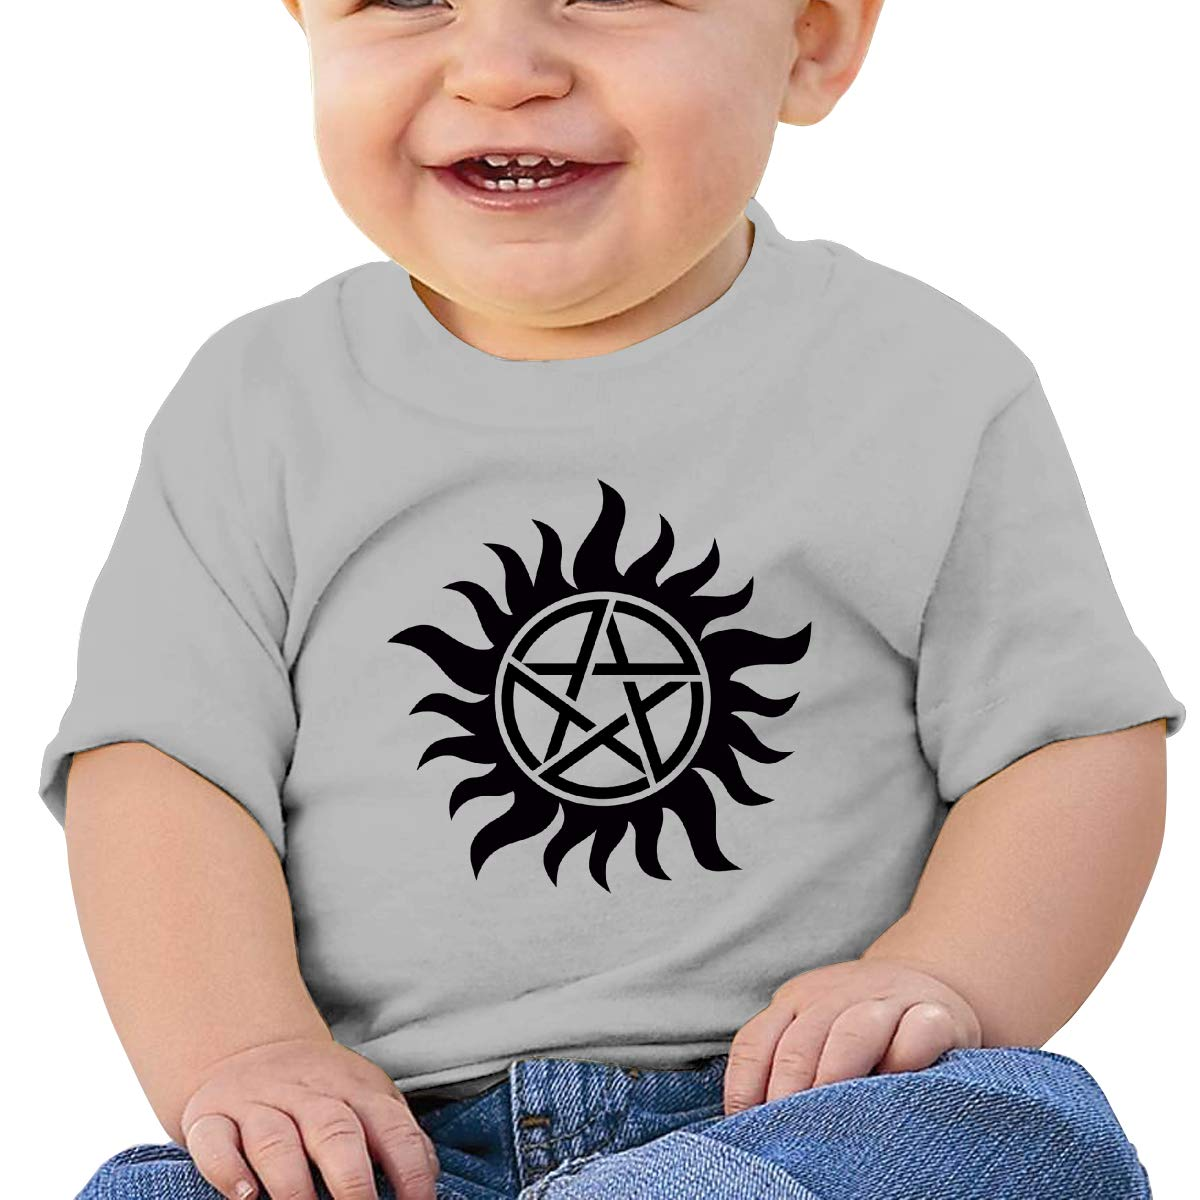 JVNSS Anti Possession Symbol Baby T-Shirt Baby Boy Girl Cotton T Shirts Crew Neck Graphic Tees for 6M-2T Baby